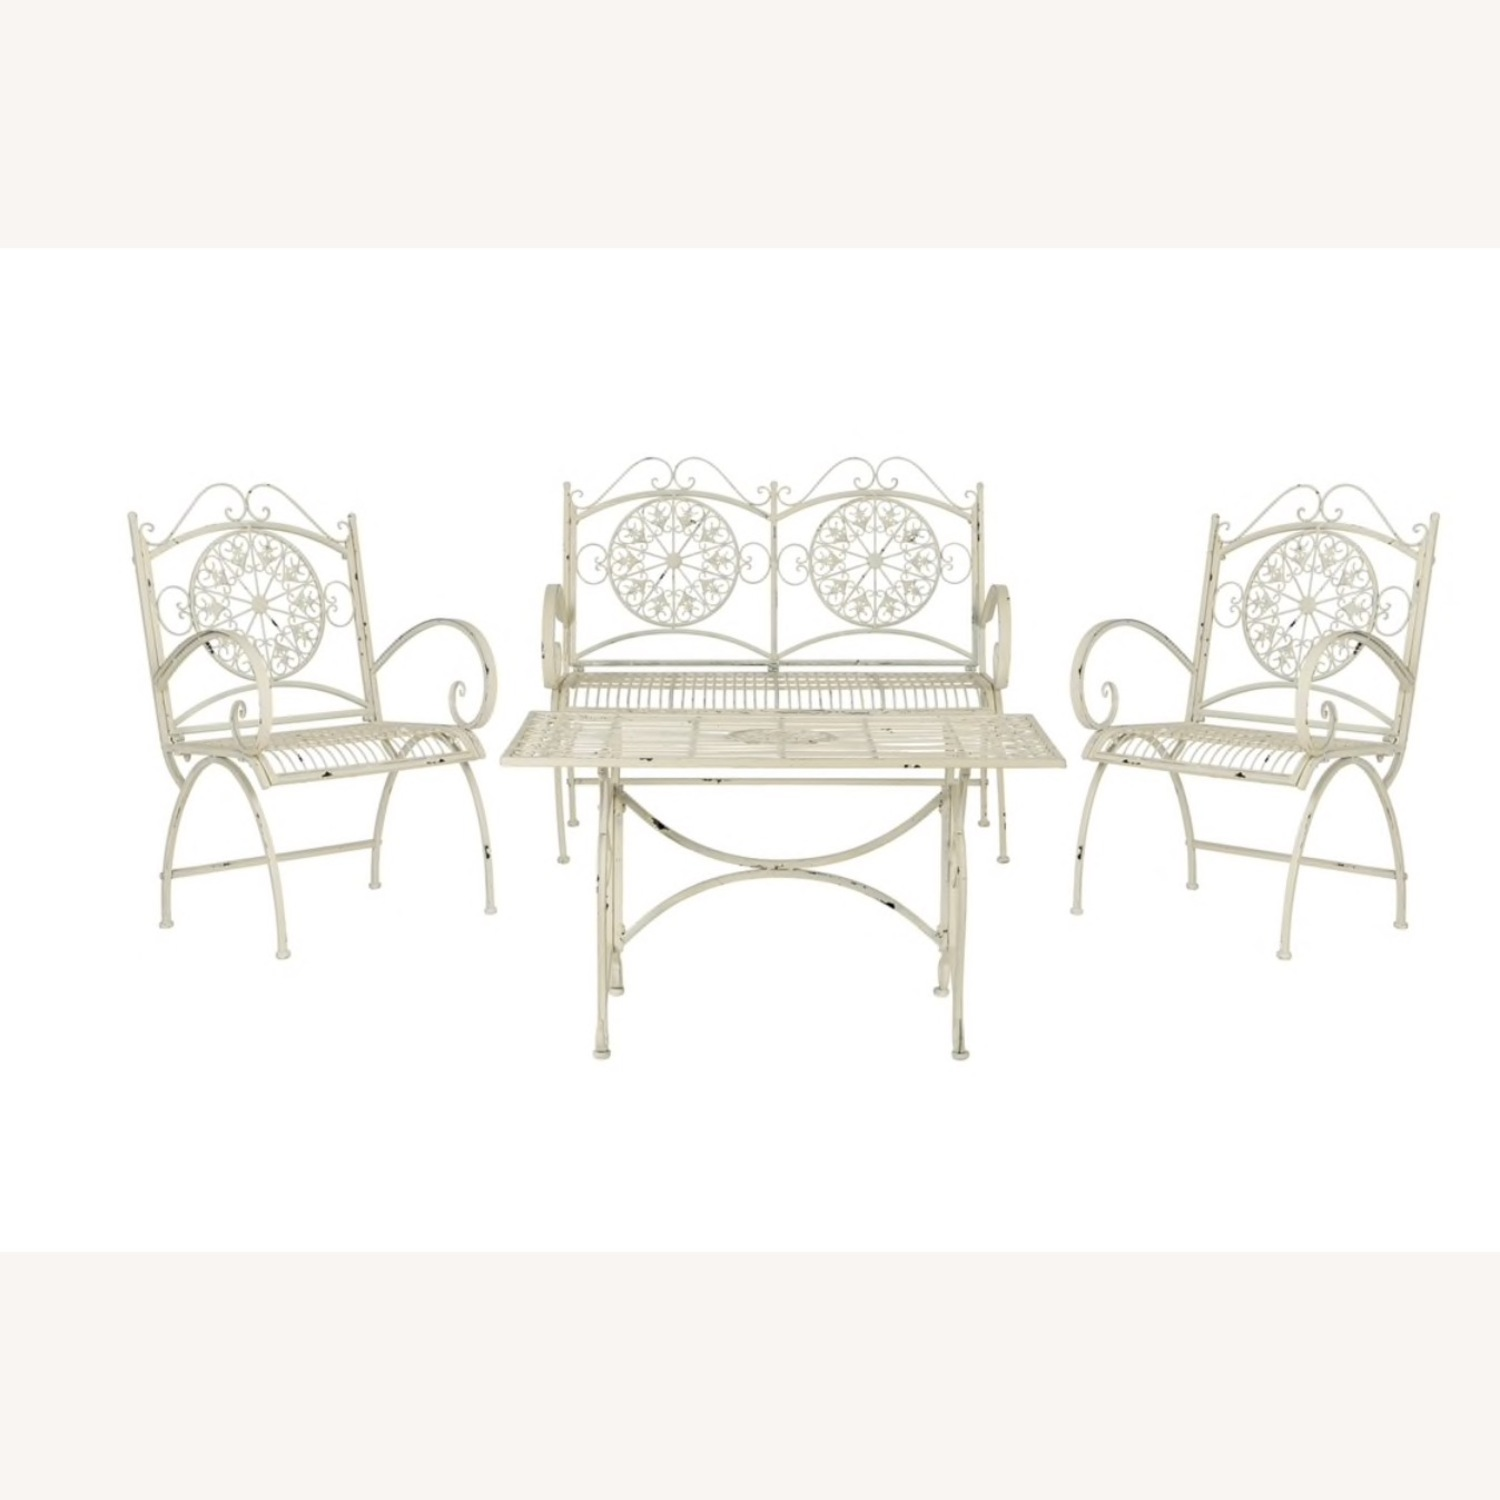 Safavieh Outdoor Rustic Antique White Iron Set - image-1